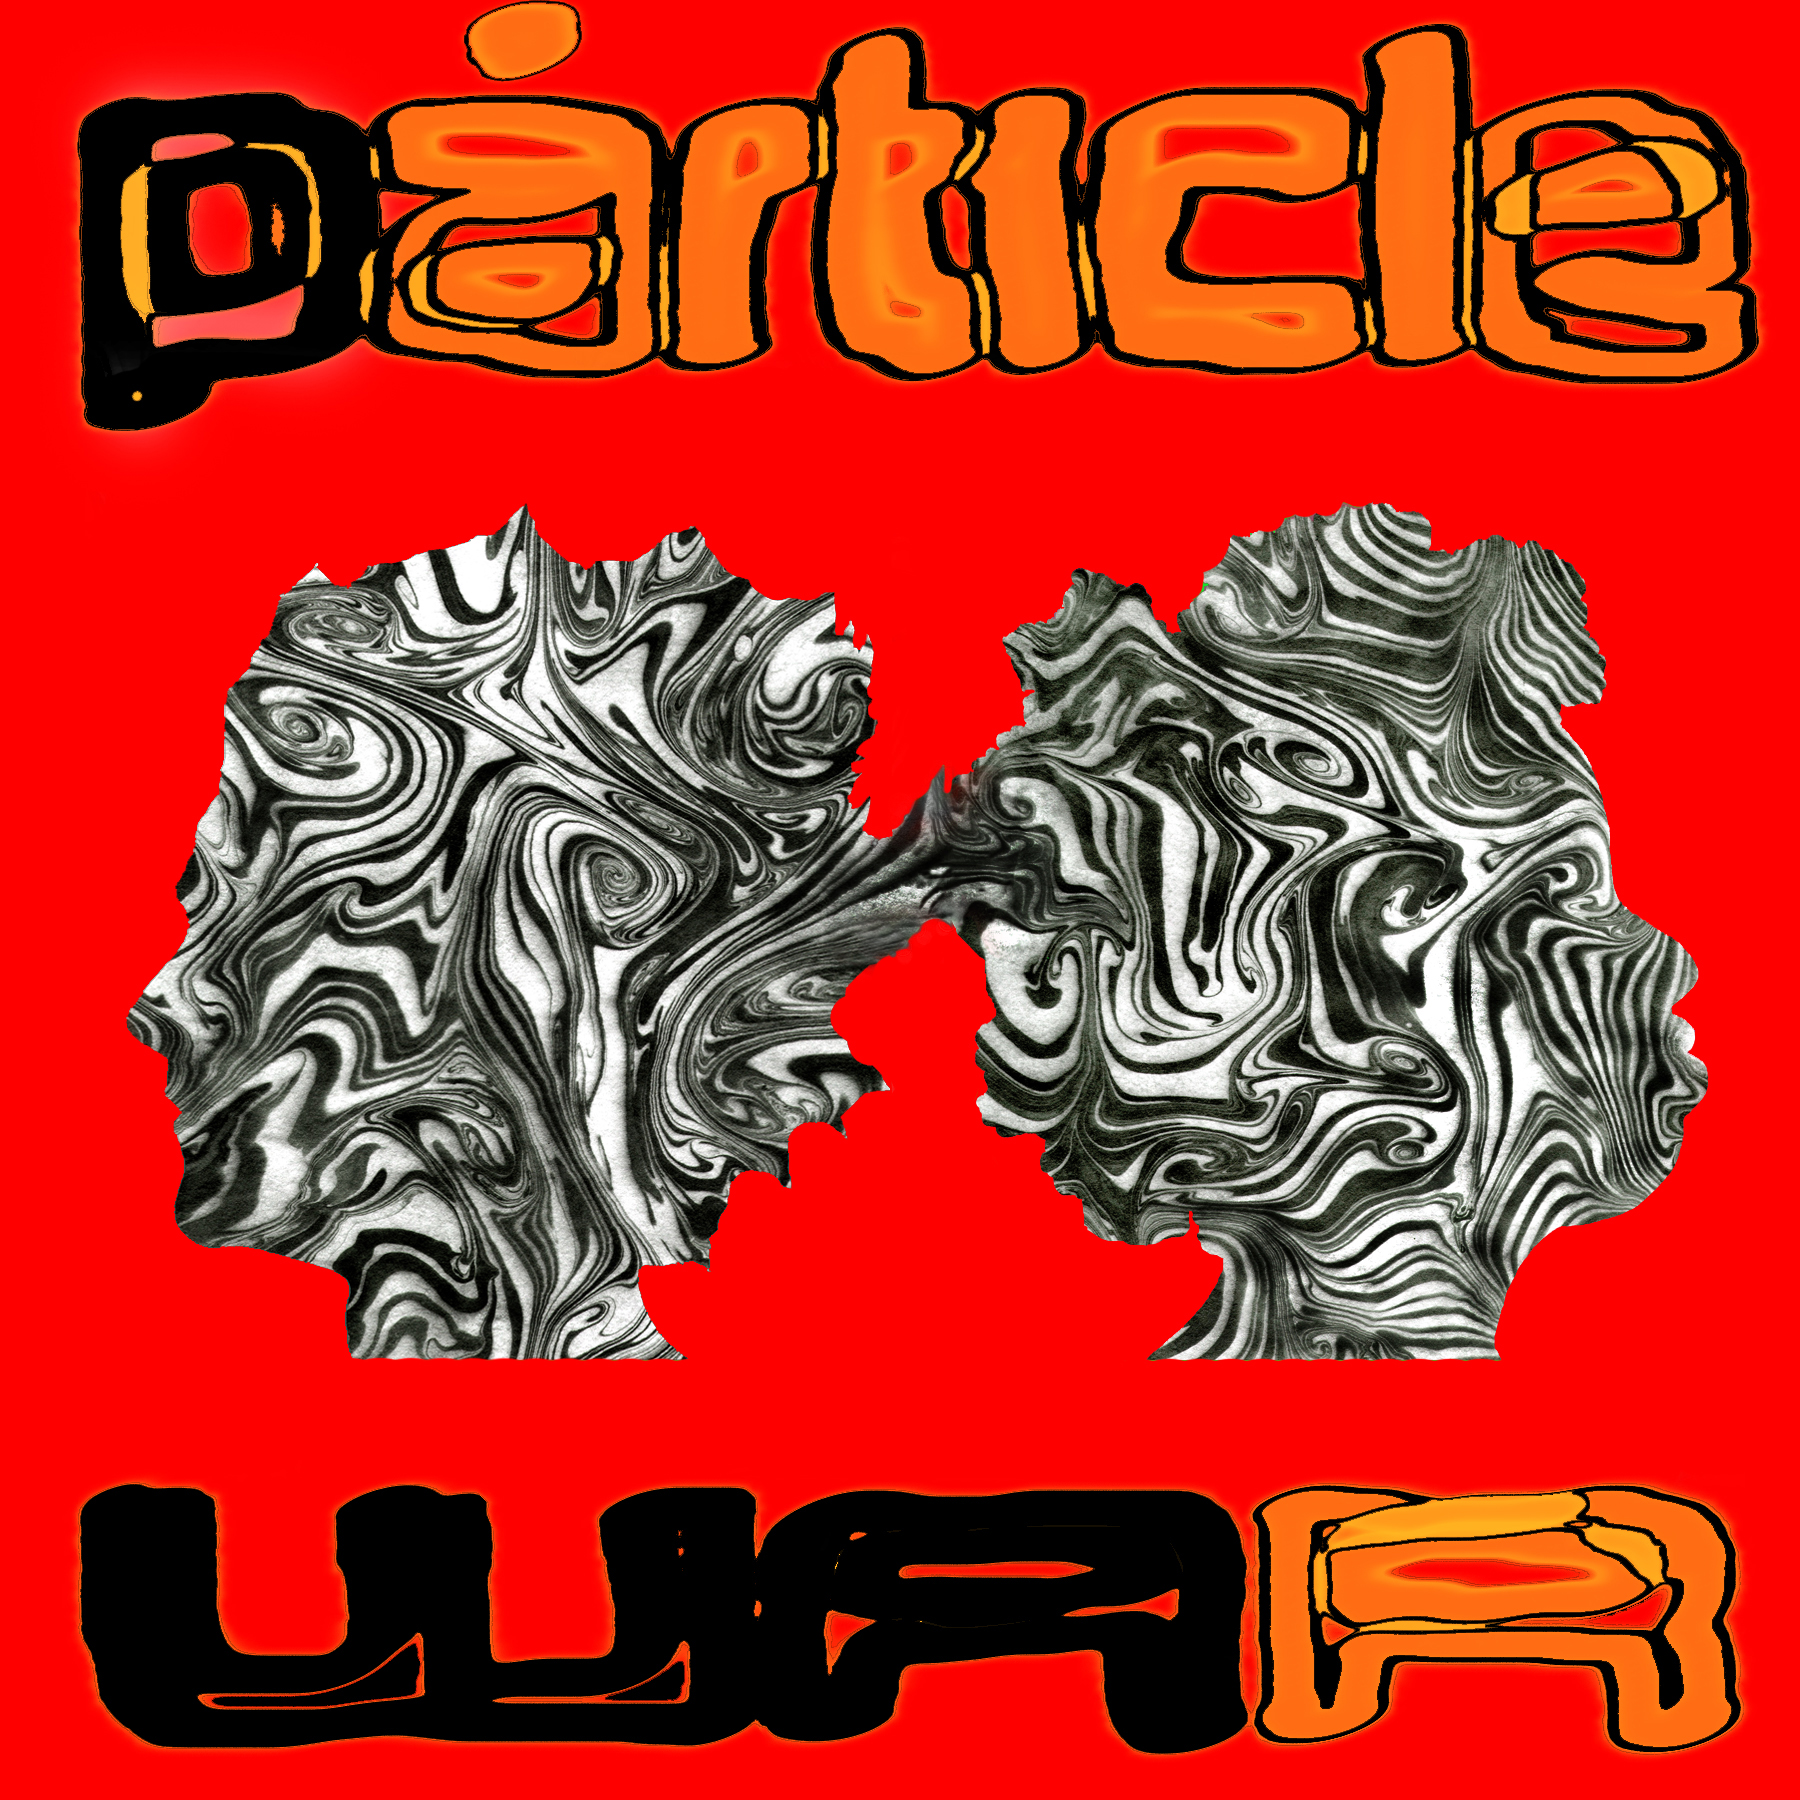 Particle_War_ALBUMCOVER.jpg